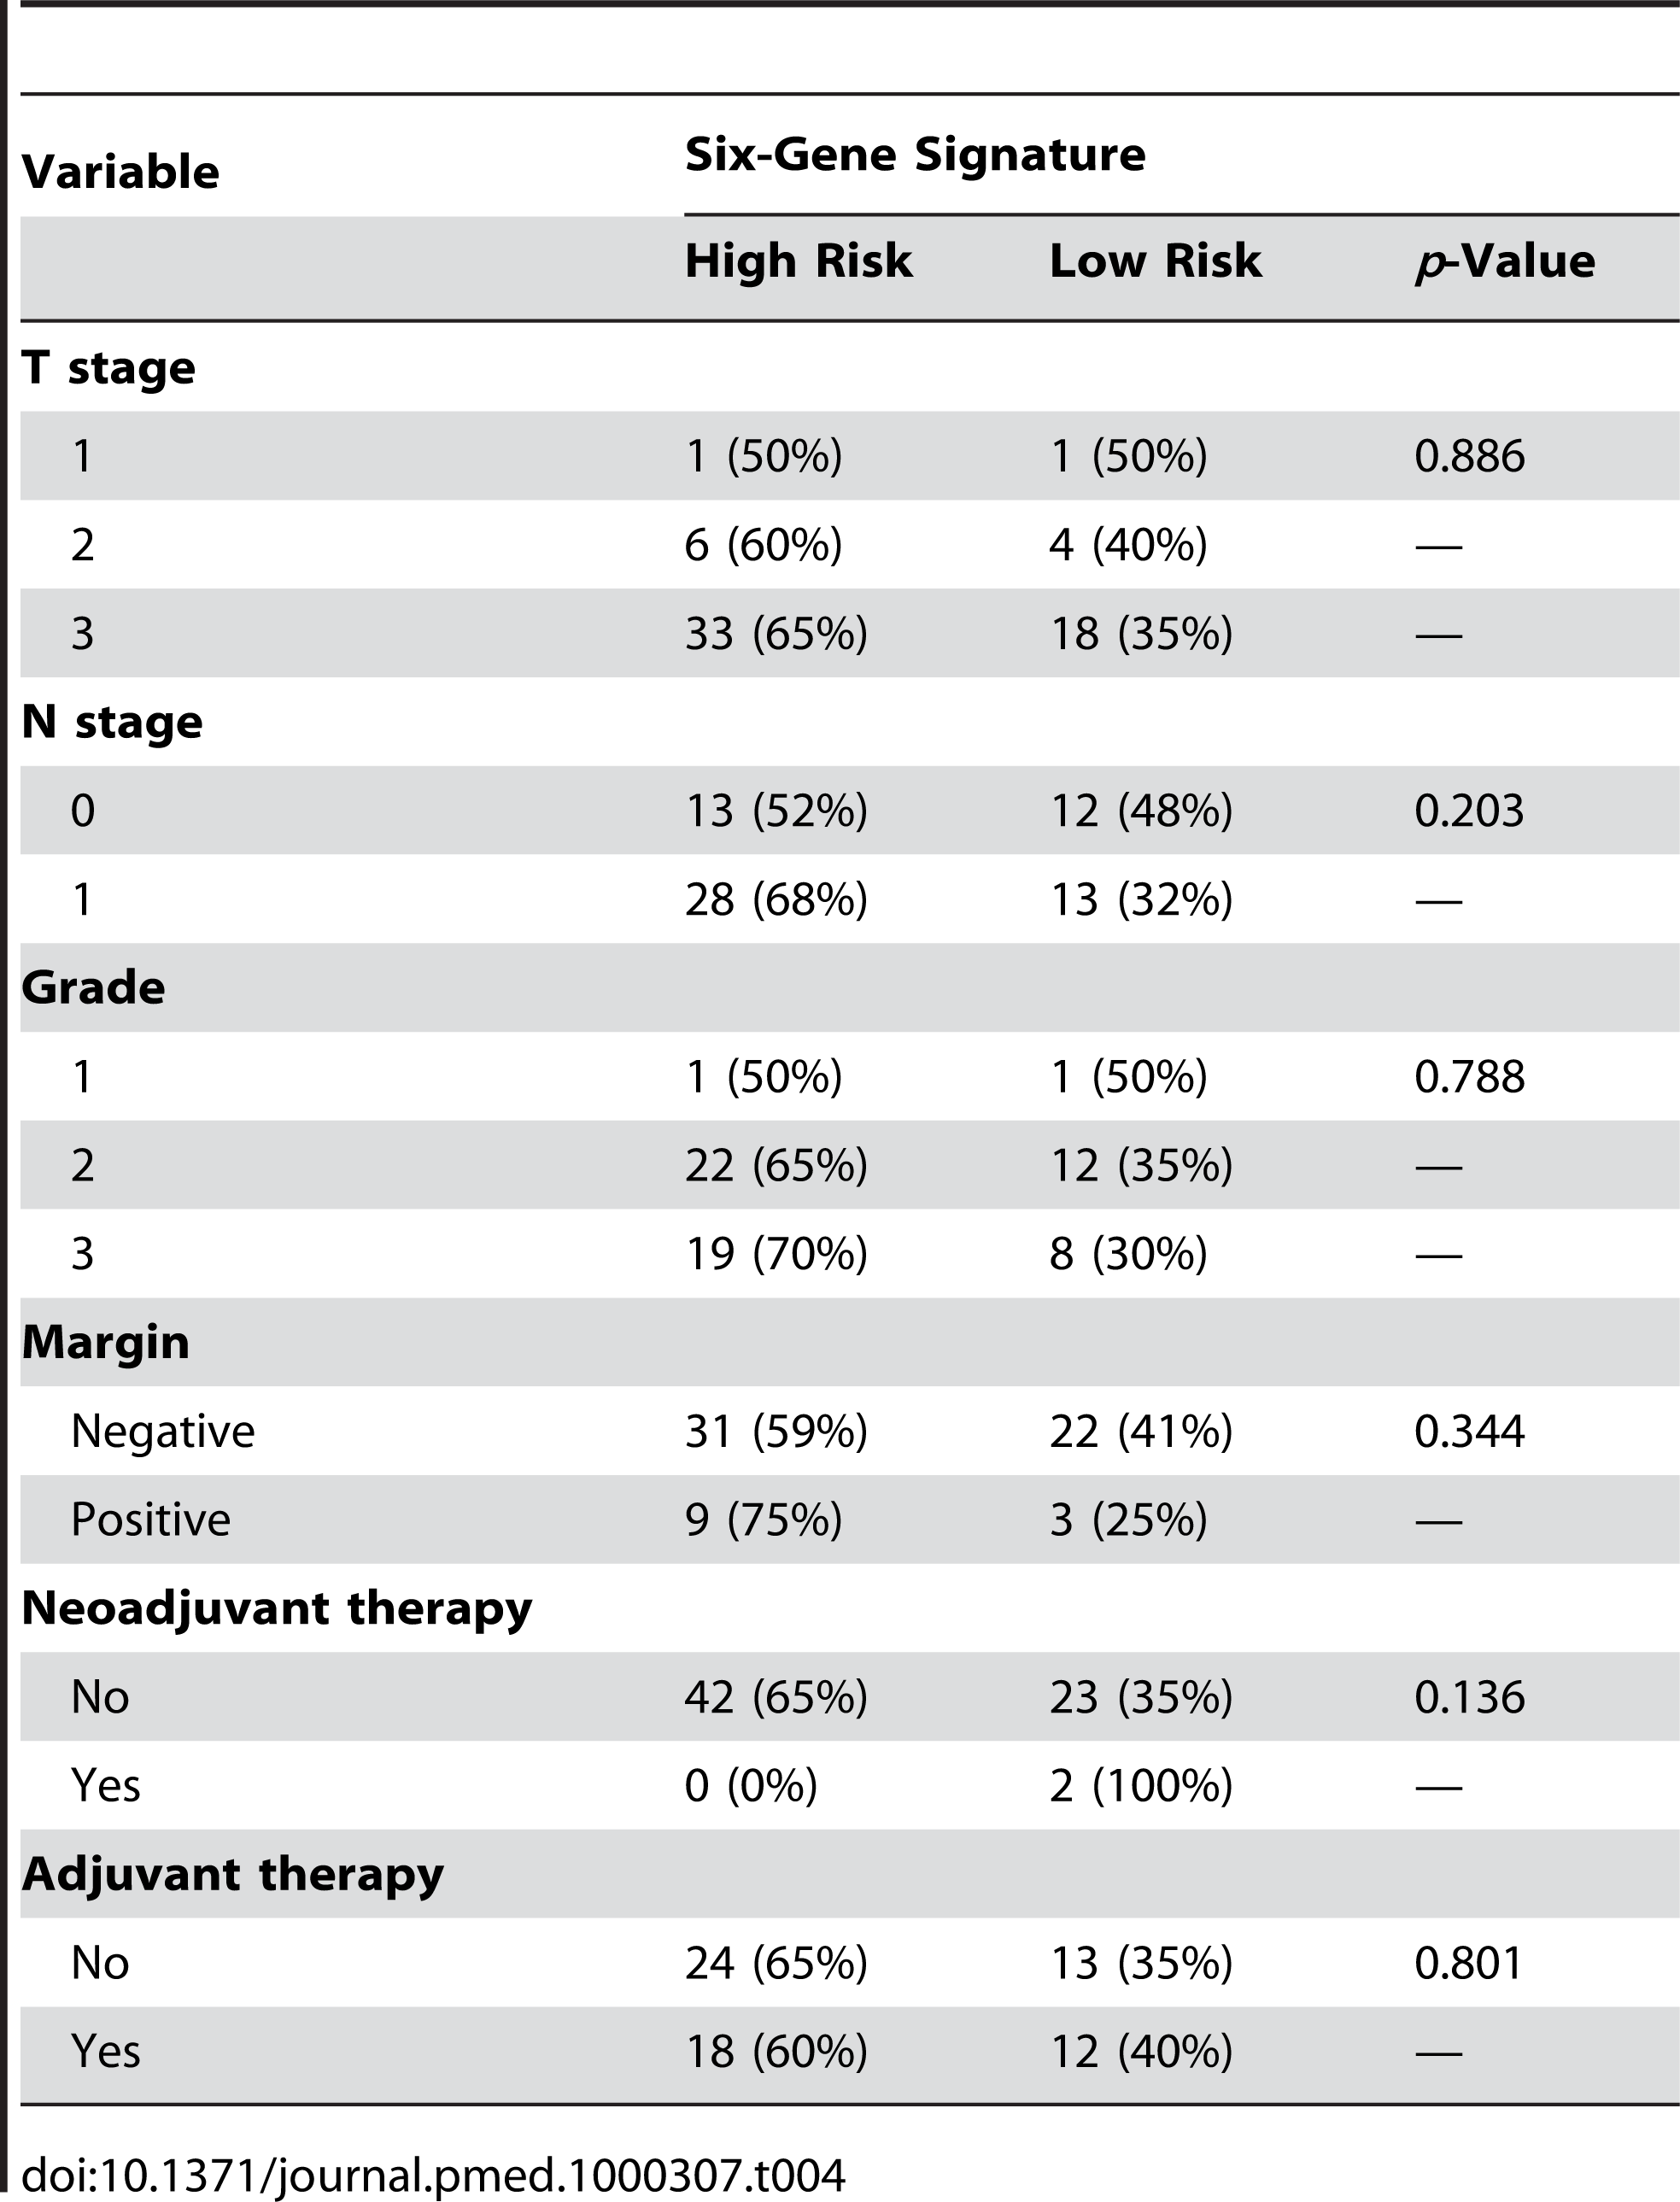 Relationship between the six-gene signature and clinicopathological variables.